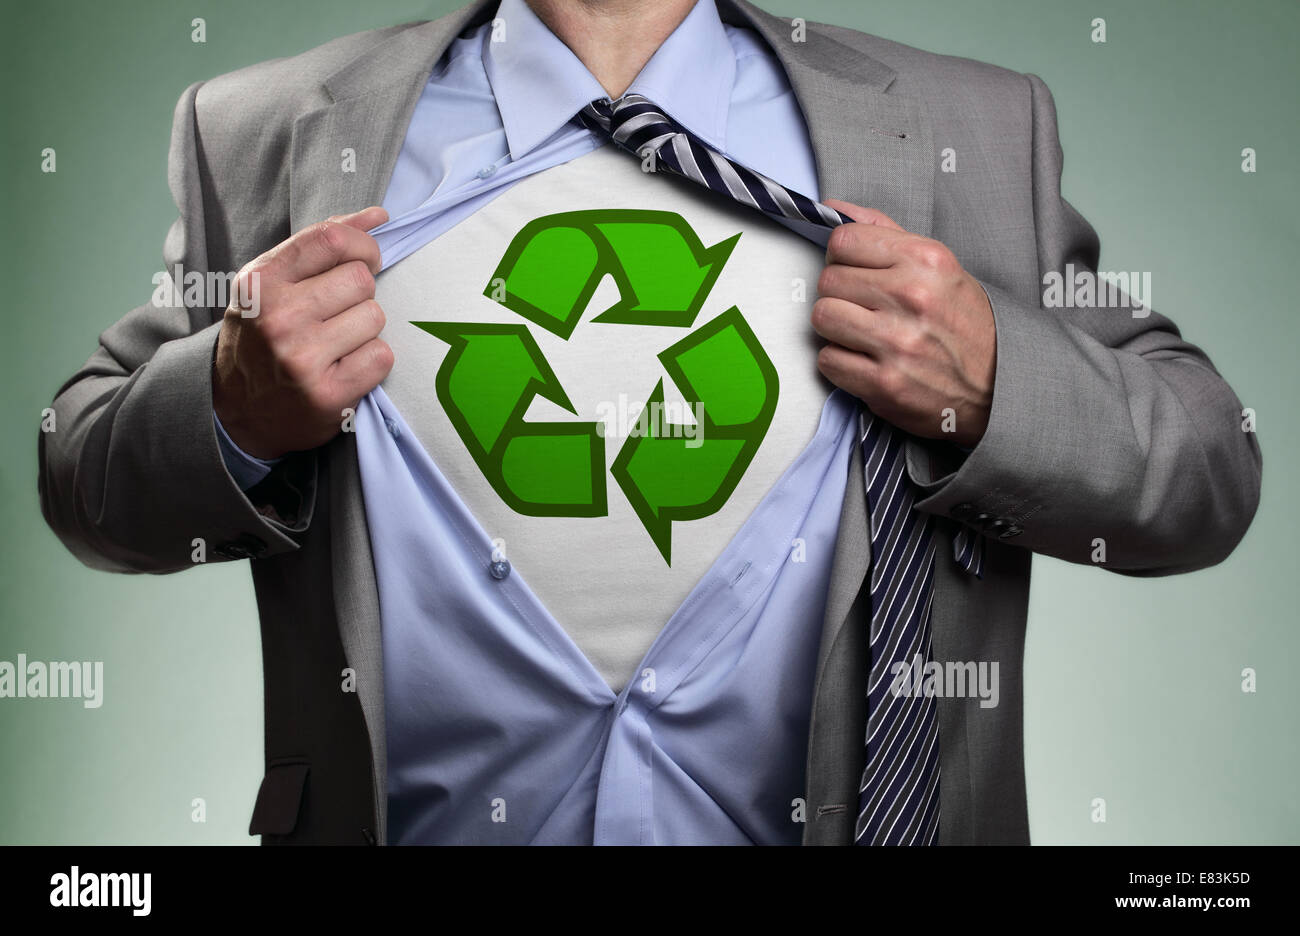 Green eco Superhero businessman Photo Stock